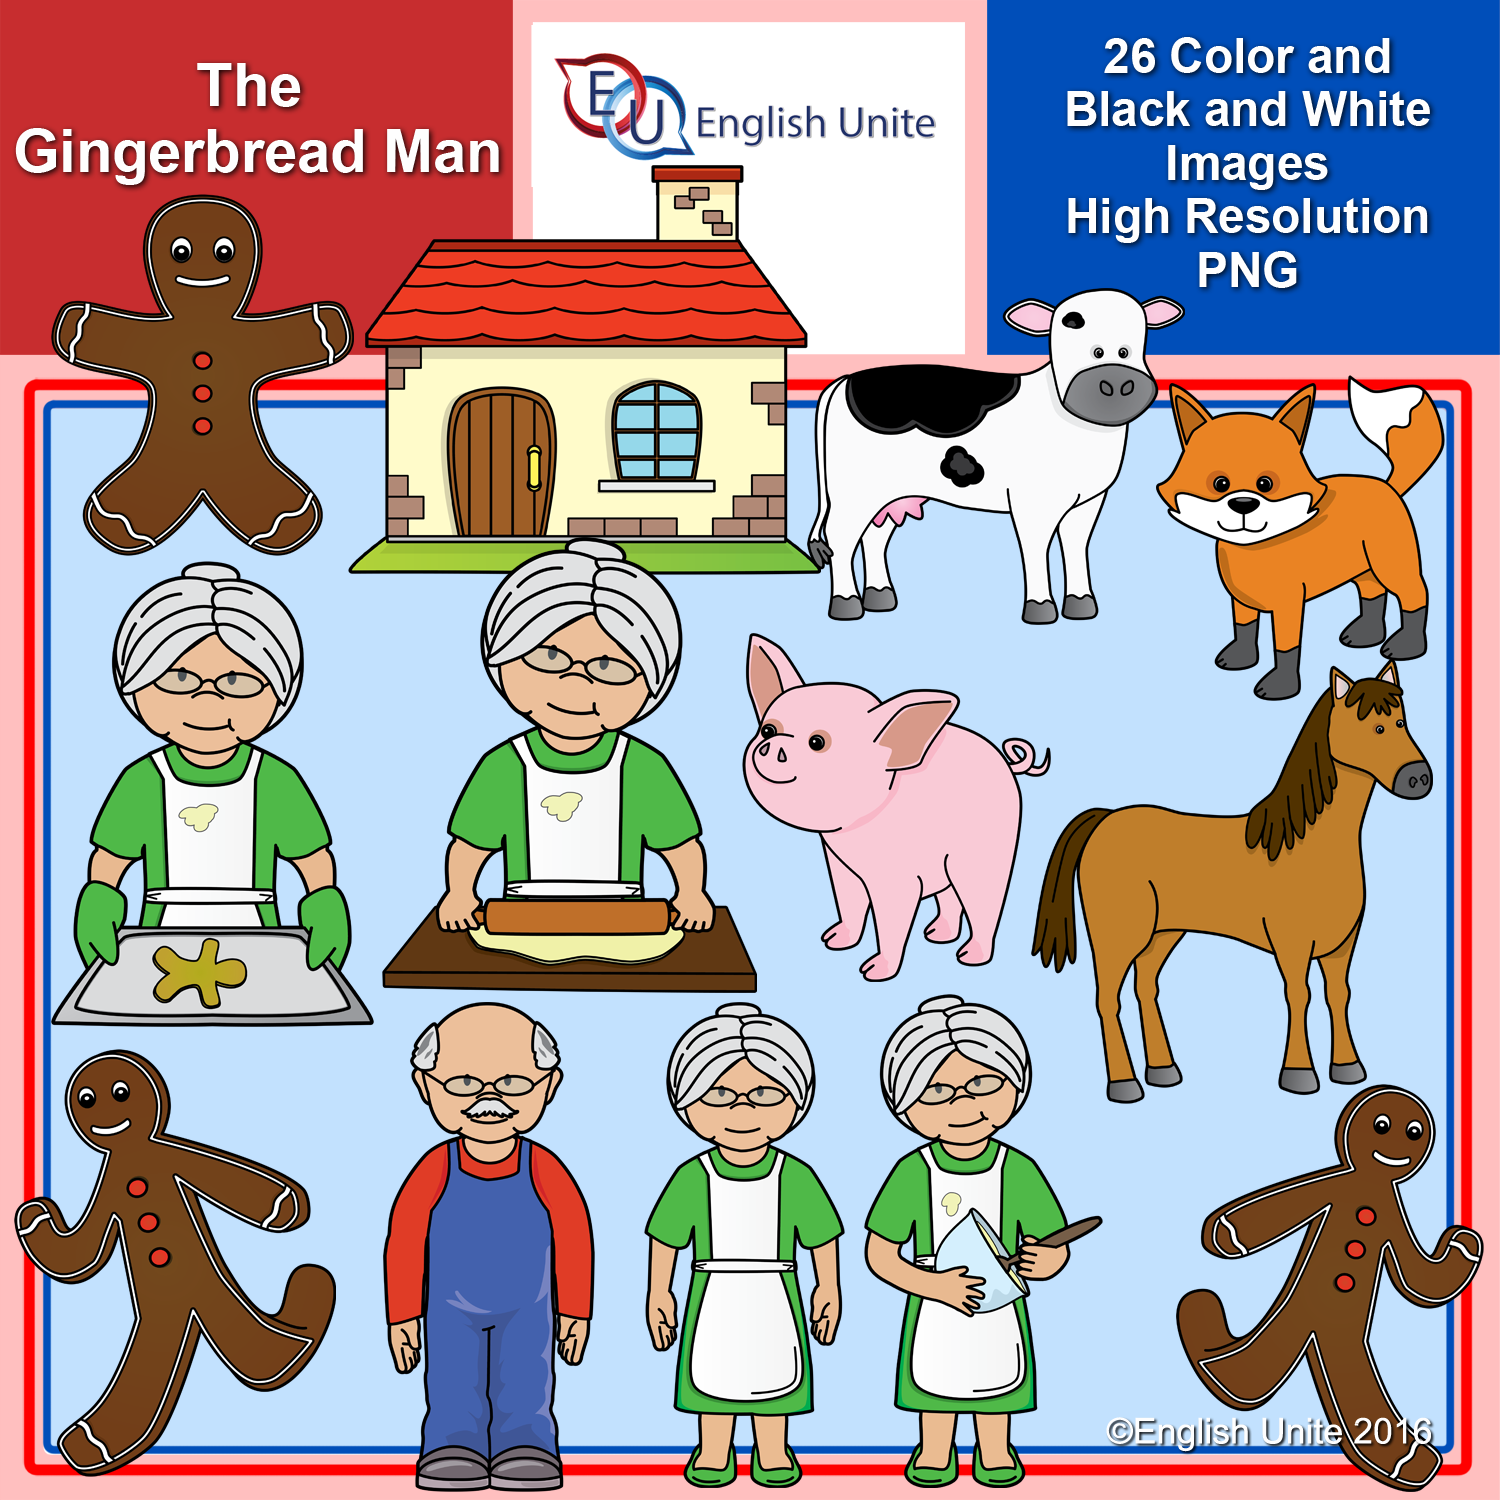 English clipart cover photo png transparent English Unite Clip Art - The Gingerbread Man - English Unite png transparent